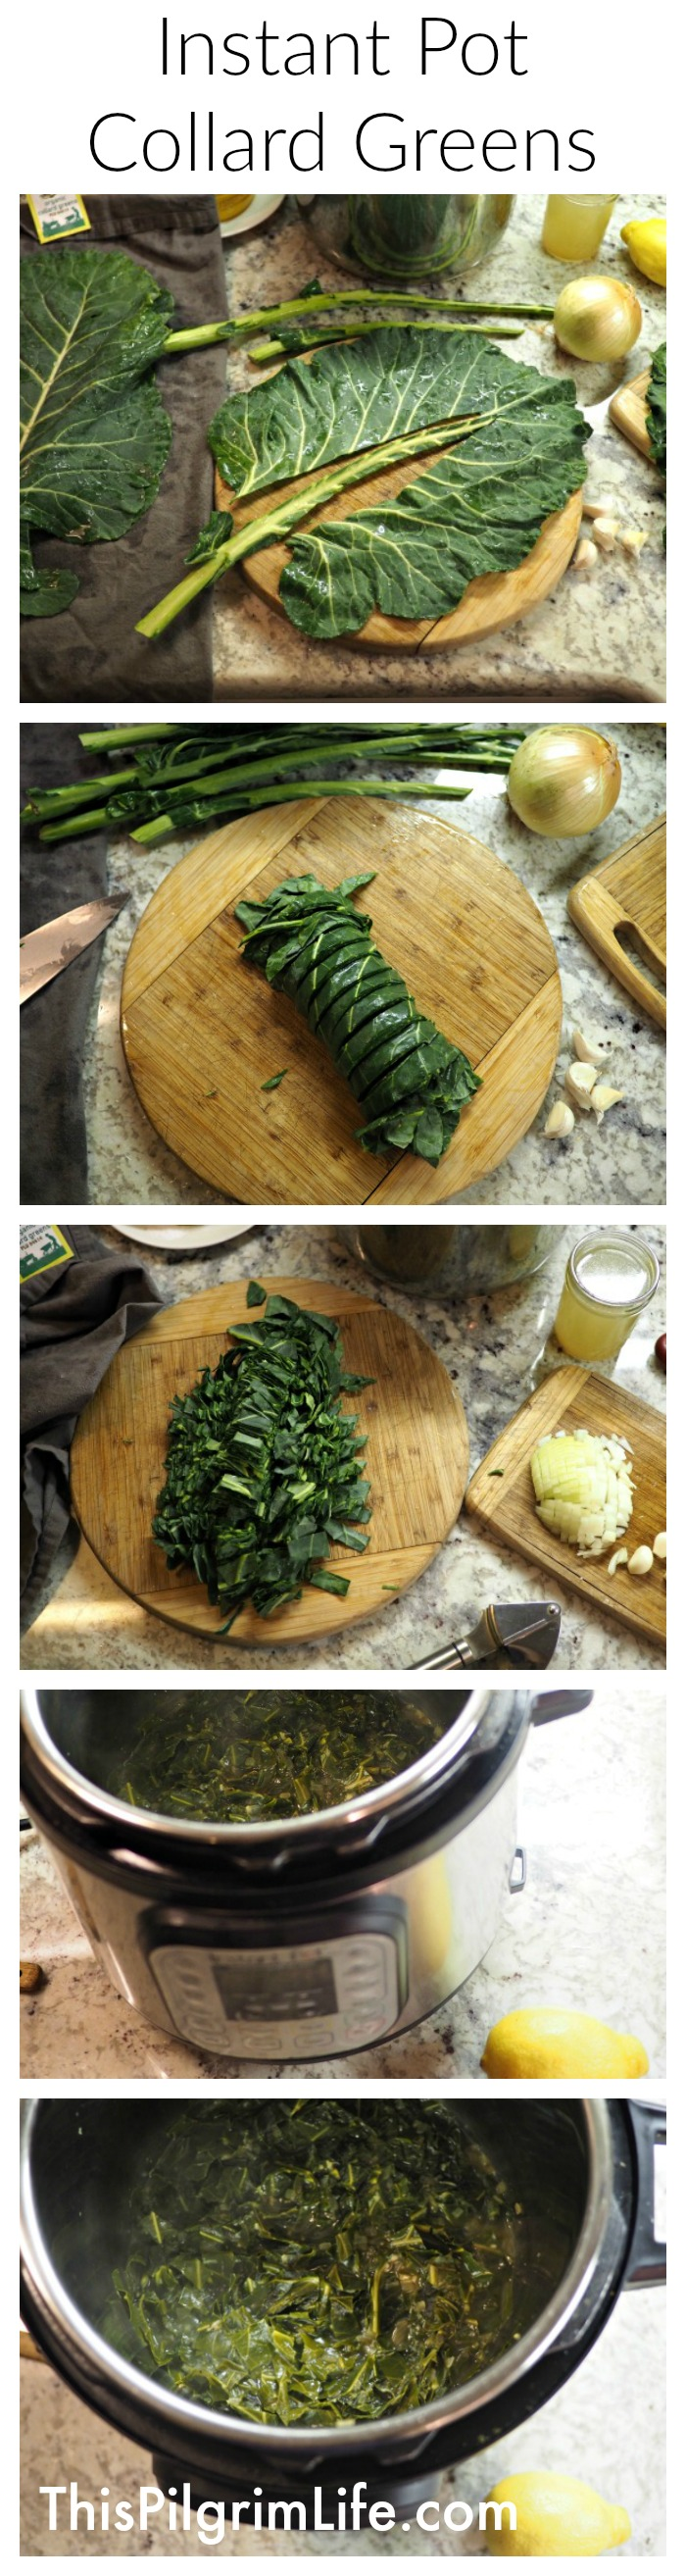 Instant Pot Collard Greens–Delicious, Quick, & Easy!